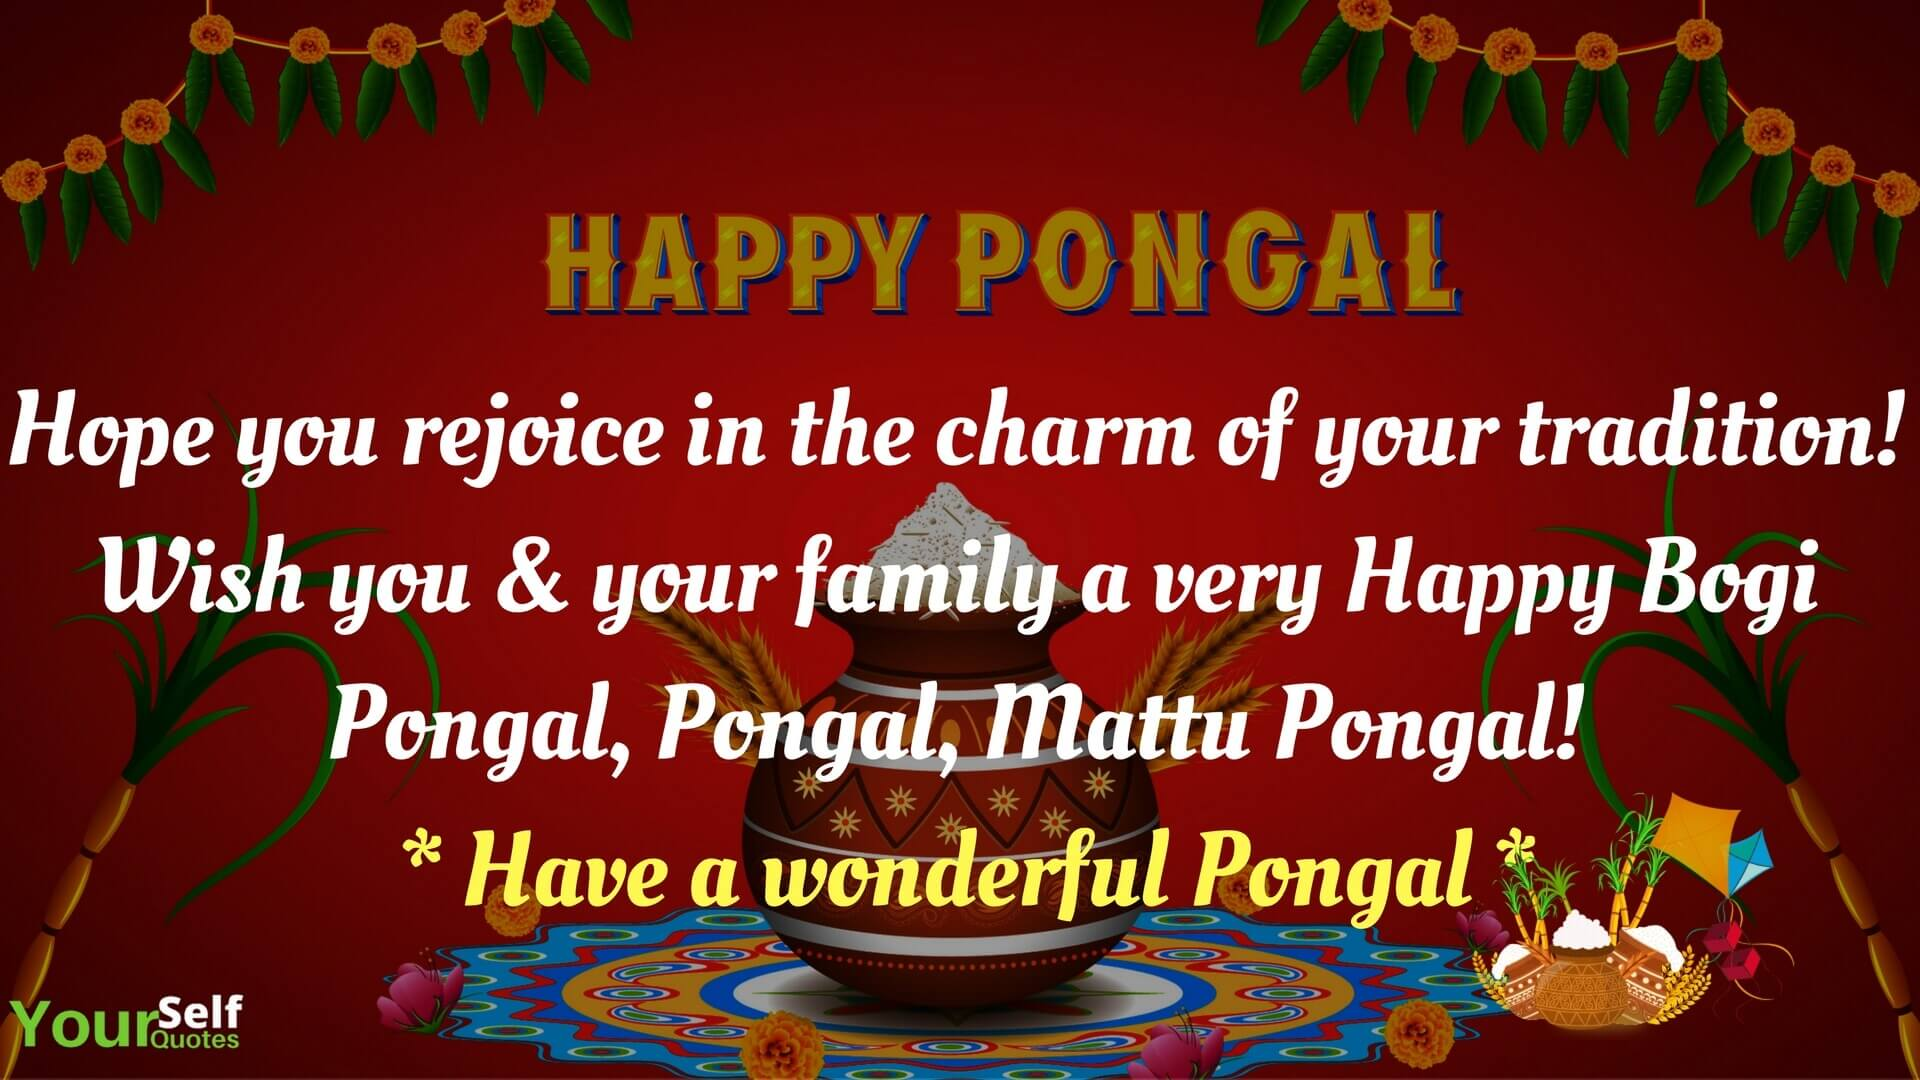 Mattu Happy Pongal Festival Wishes